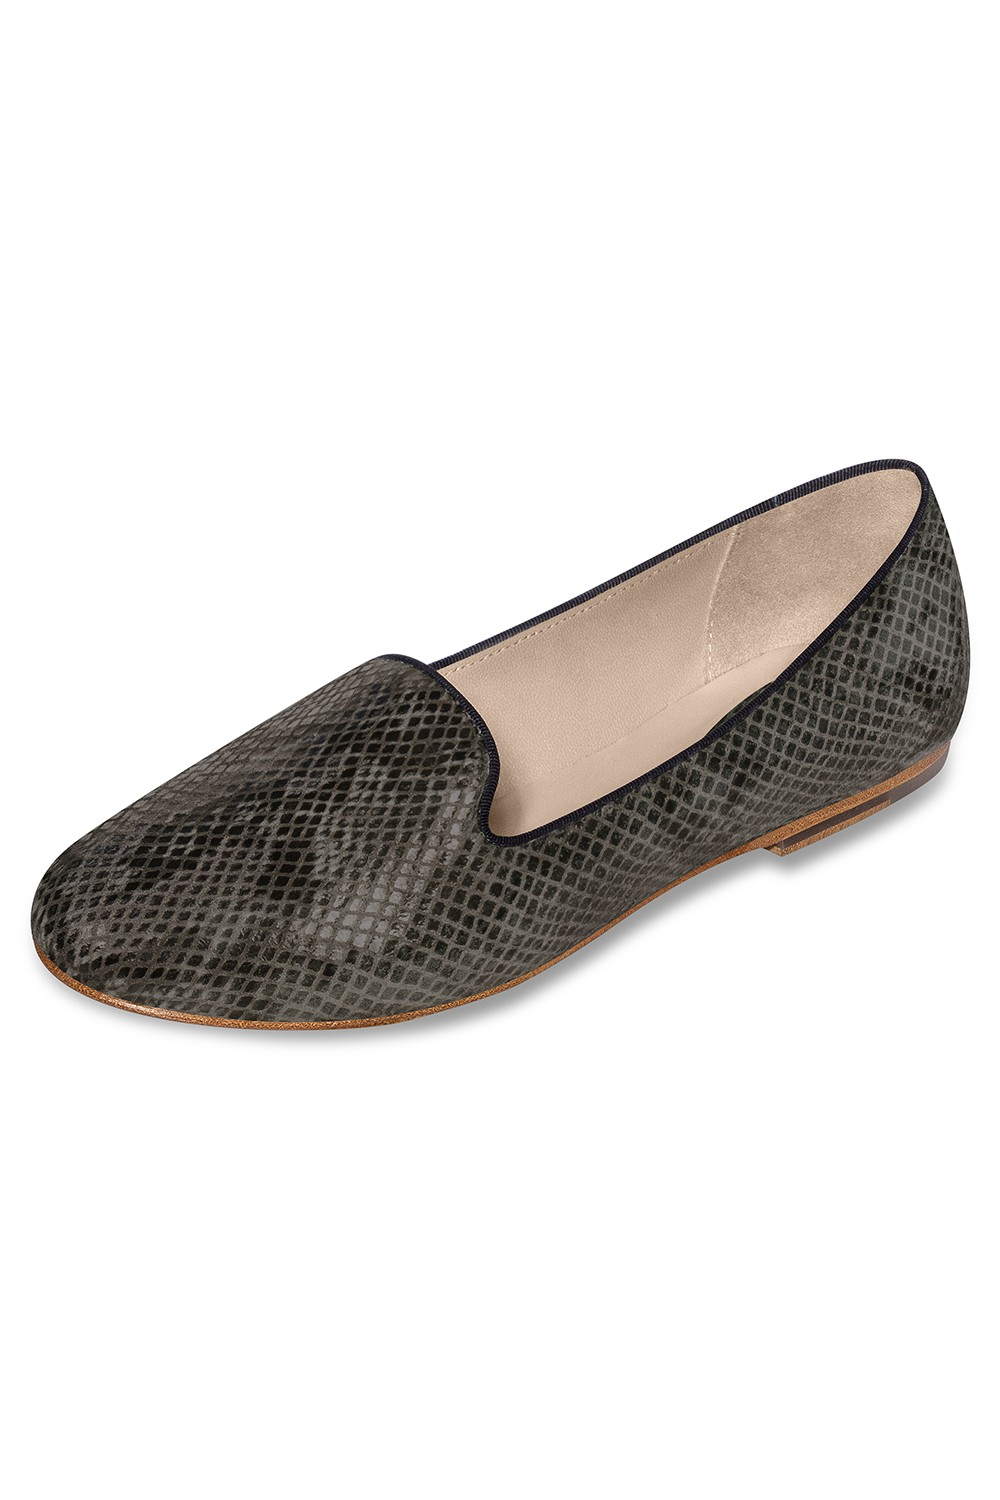 Madrigal Ladies Ballet Flats Womens Fashion Shoes